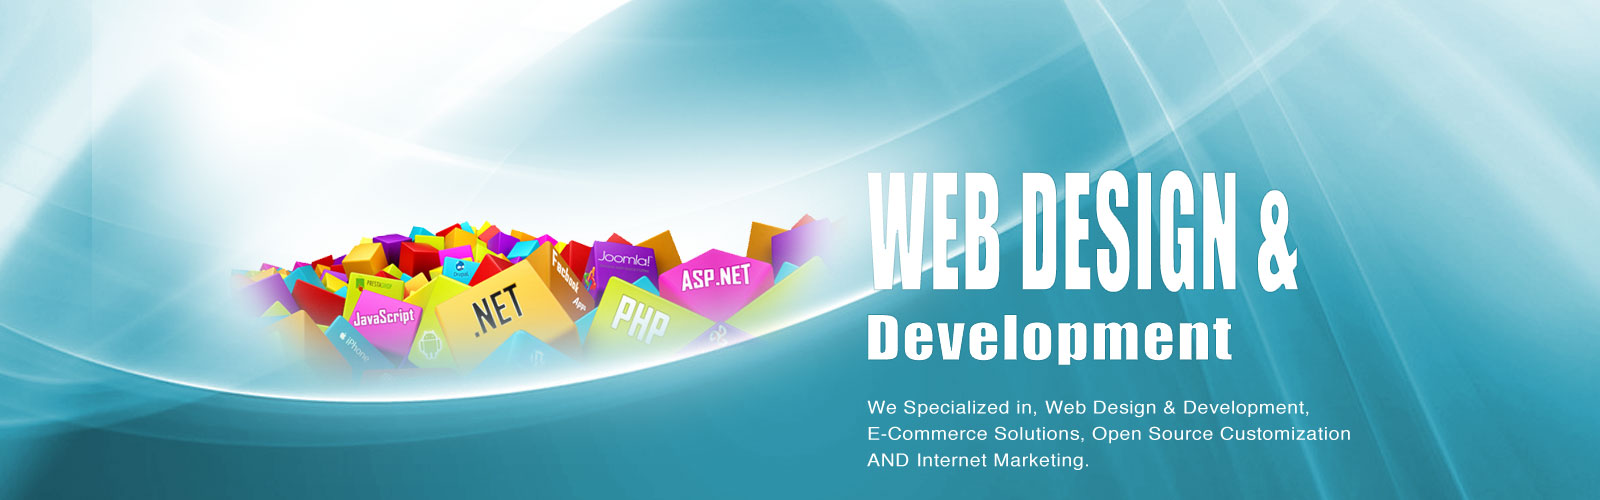 Website Designing Company In Delhi India Website Design Development Service Agency